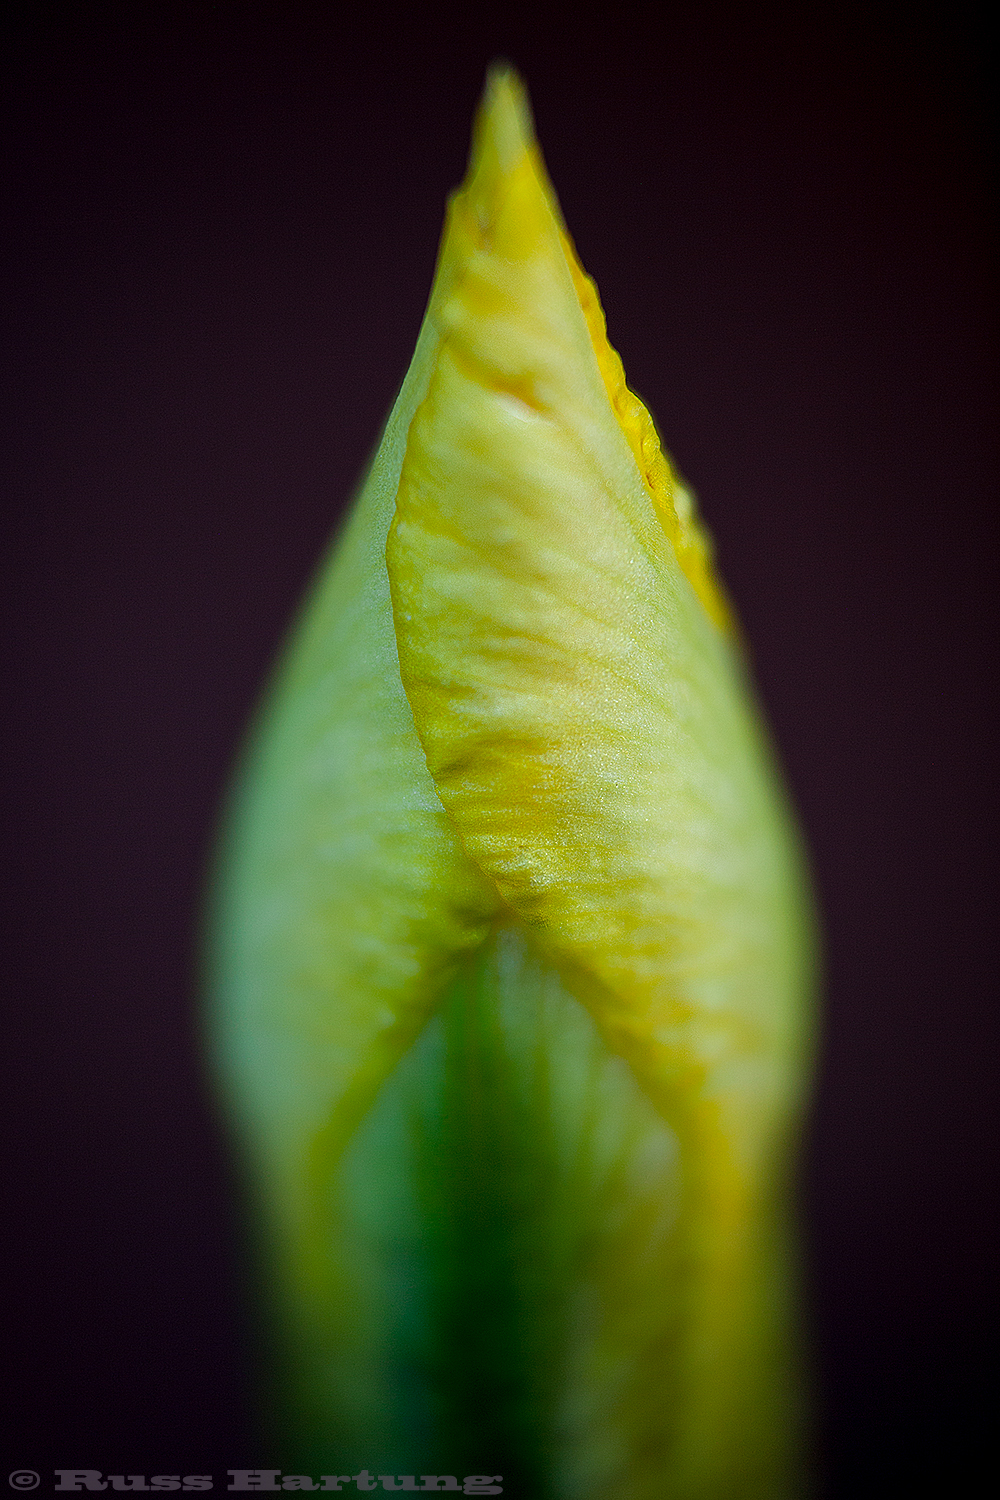 Pointed bud.